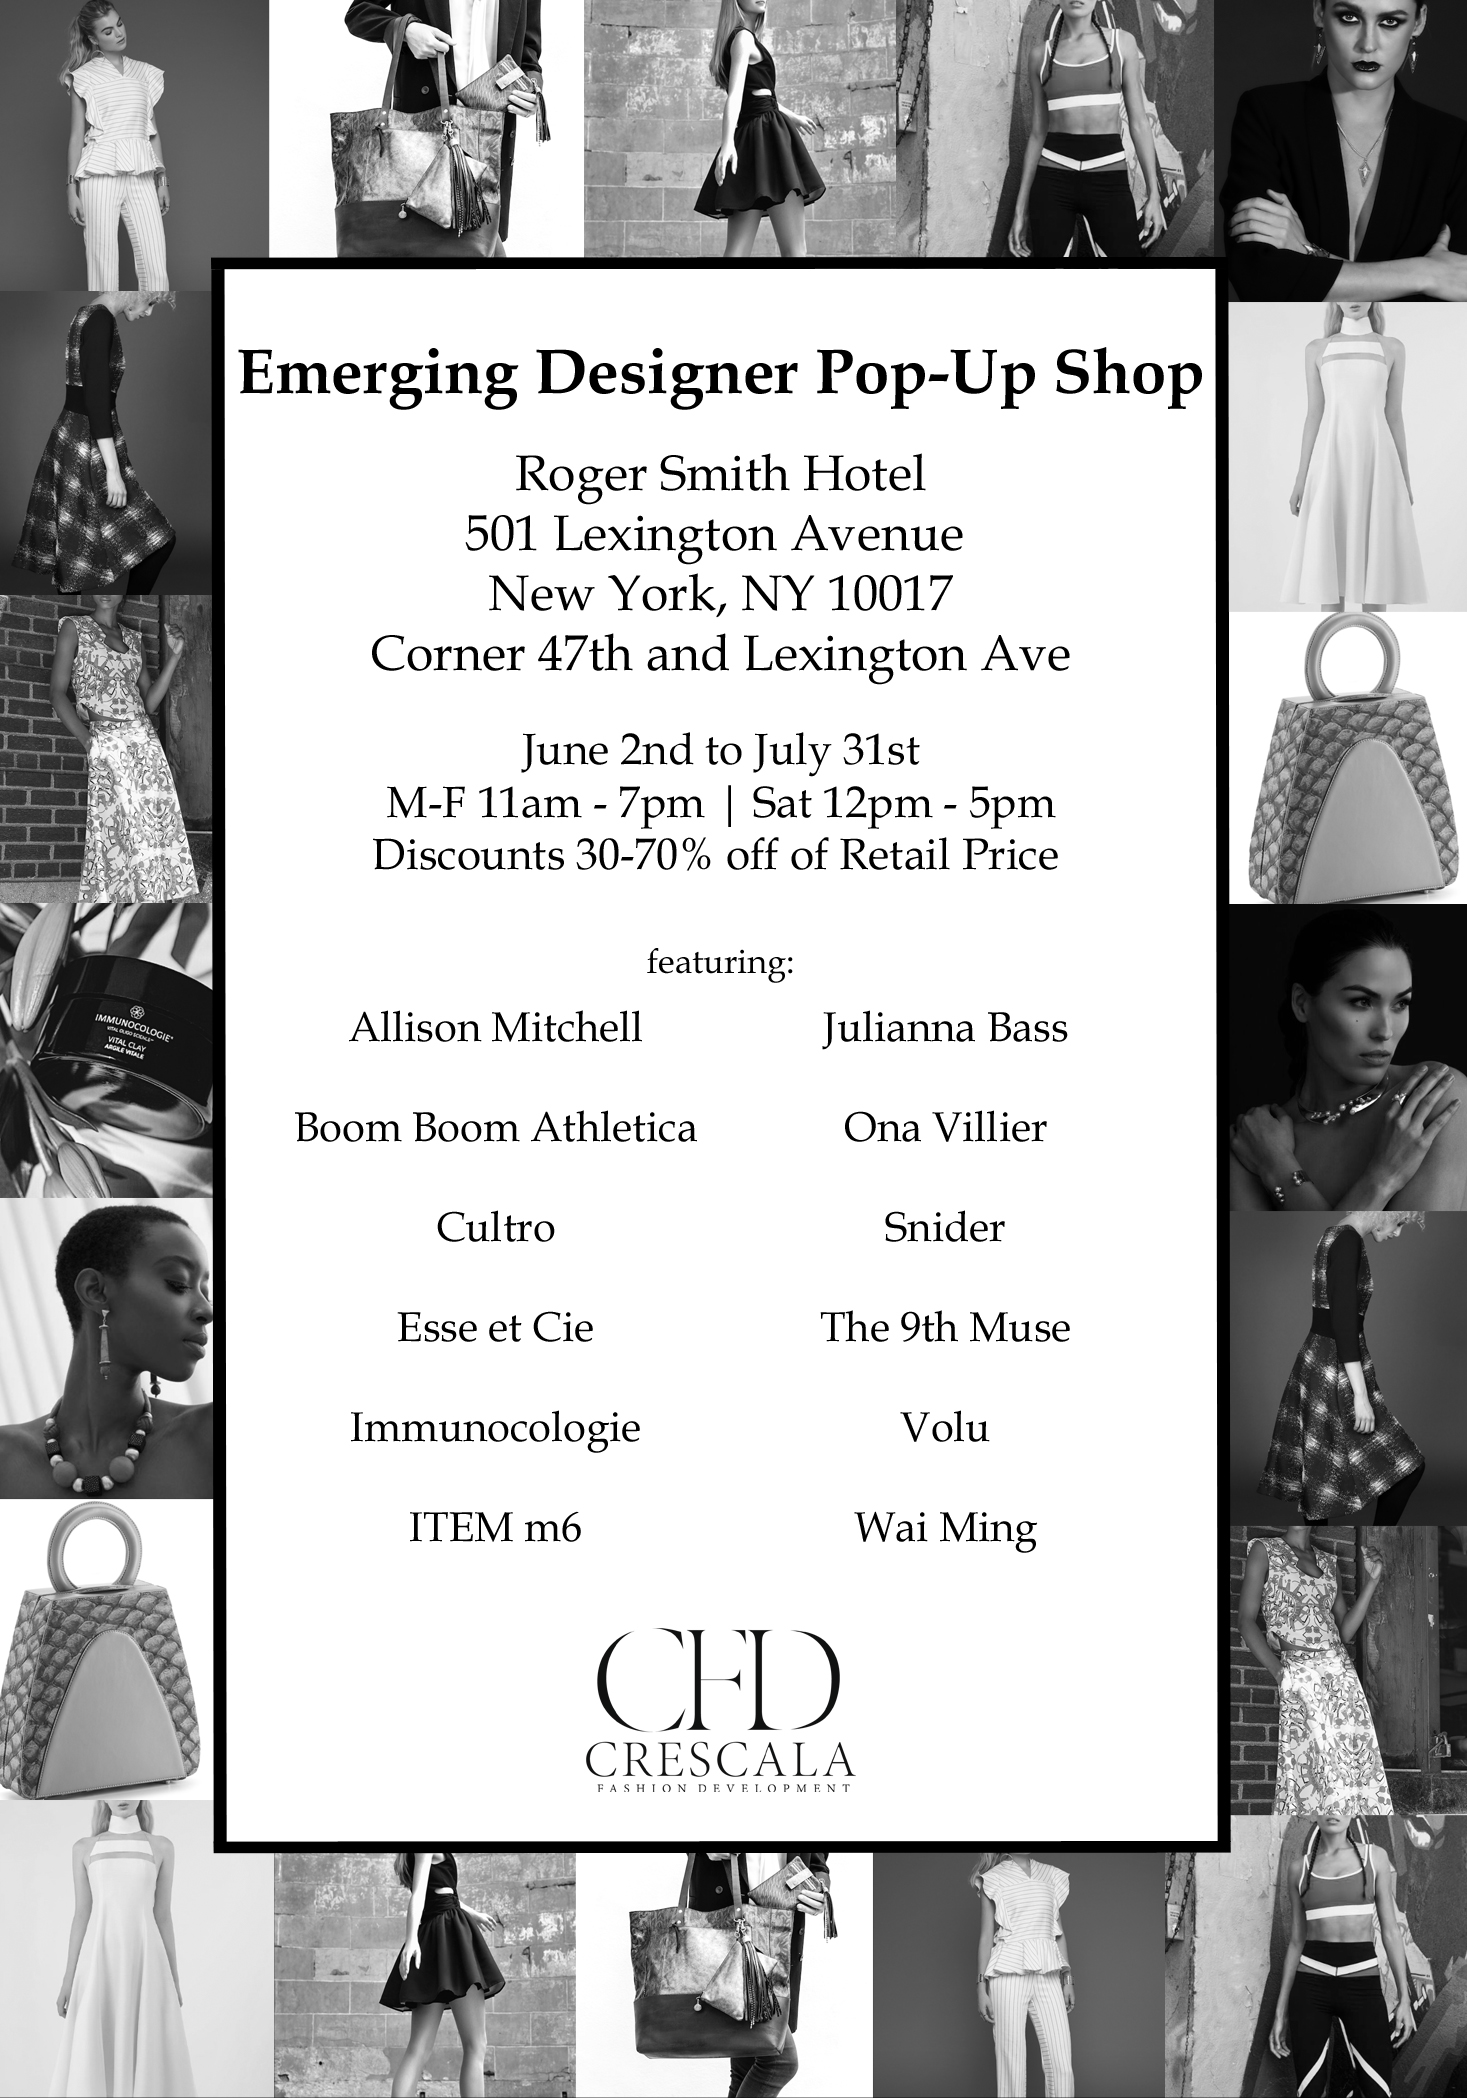 Summer 2017 will be the summer of emerging design!   We're very excited to announce that Crescala Fashion Development will be opening up a summer pop-up shop, featuring a handful of our incredible designers: Allison Mitchell, Boom Boom Athletica, Cultro, Esse et Cie, Immunocologie, ITEM m6, Julianna Bass, Ona Villier, Snider, The 9th Muse, Volu, and Wai Ming. Join us June through July, Monday through Saturday, and enjoy 30%-70% off ticketed retail price.   Call 646.912.9292 or email sales@crescala.com for questions.